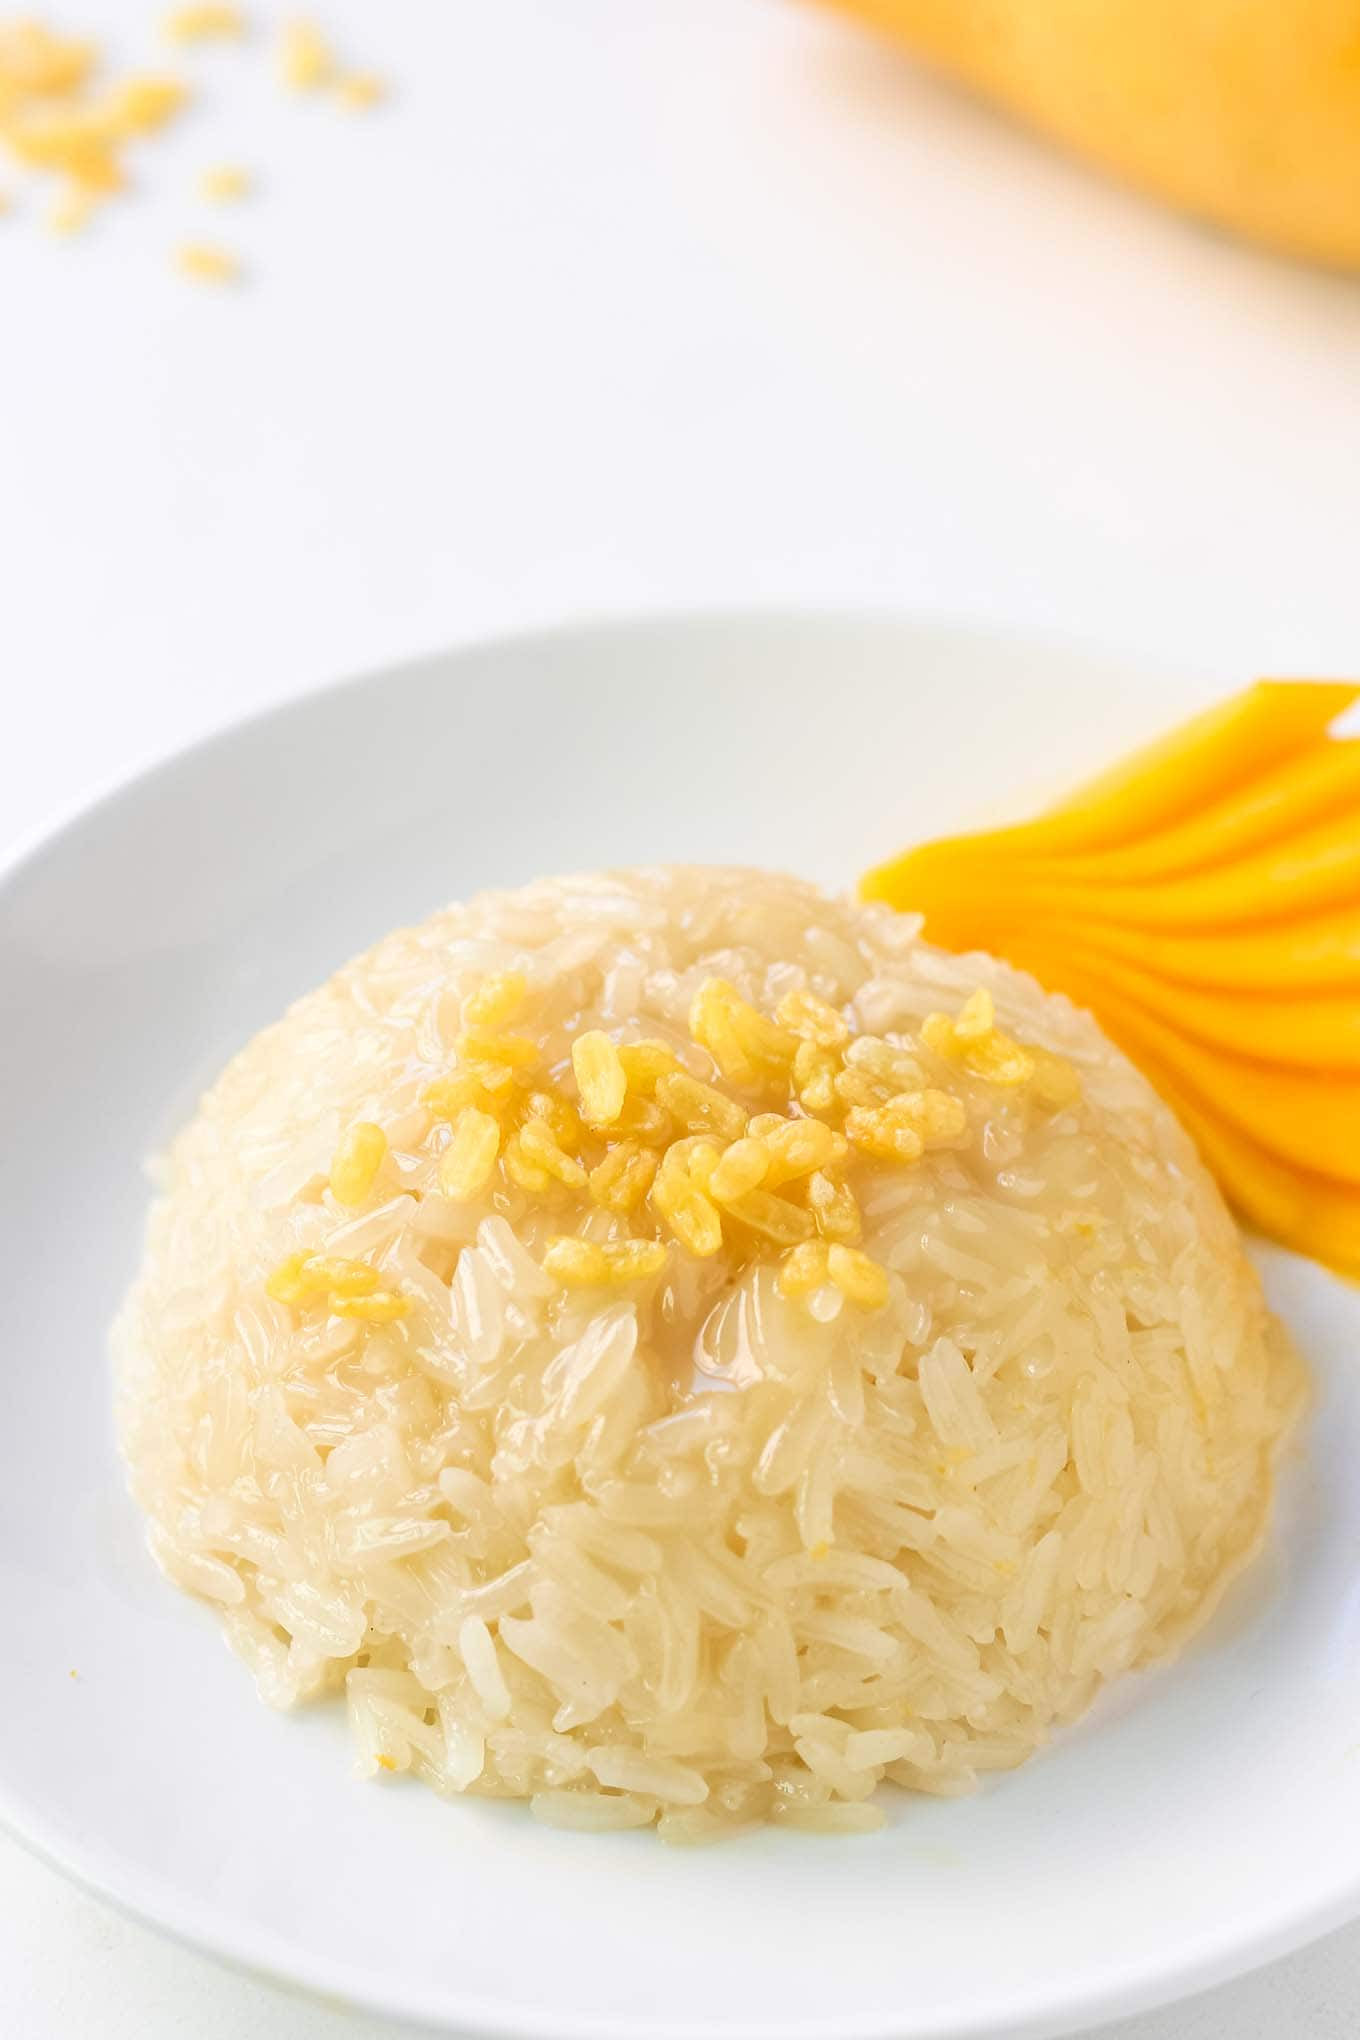 Thai Mango Sticky Rice Dessert Recipe - LeelaLicious